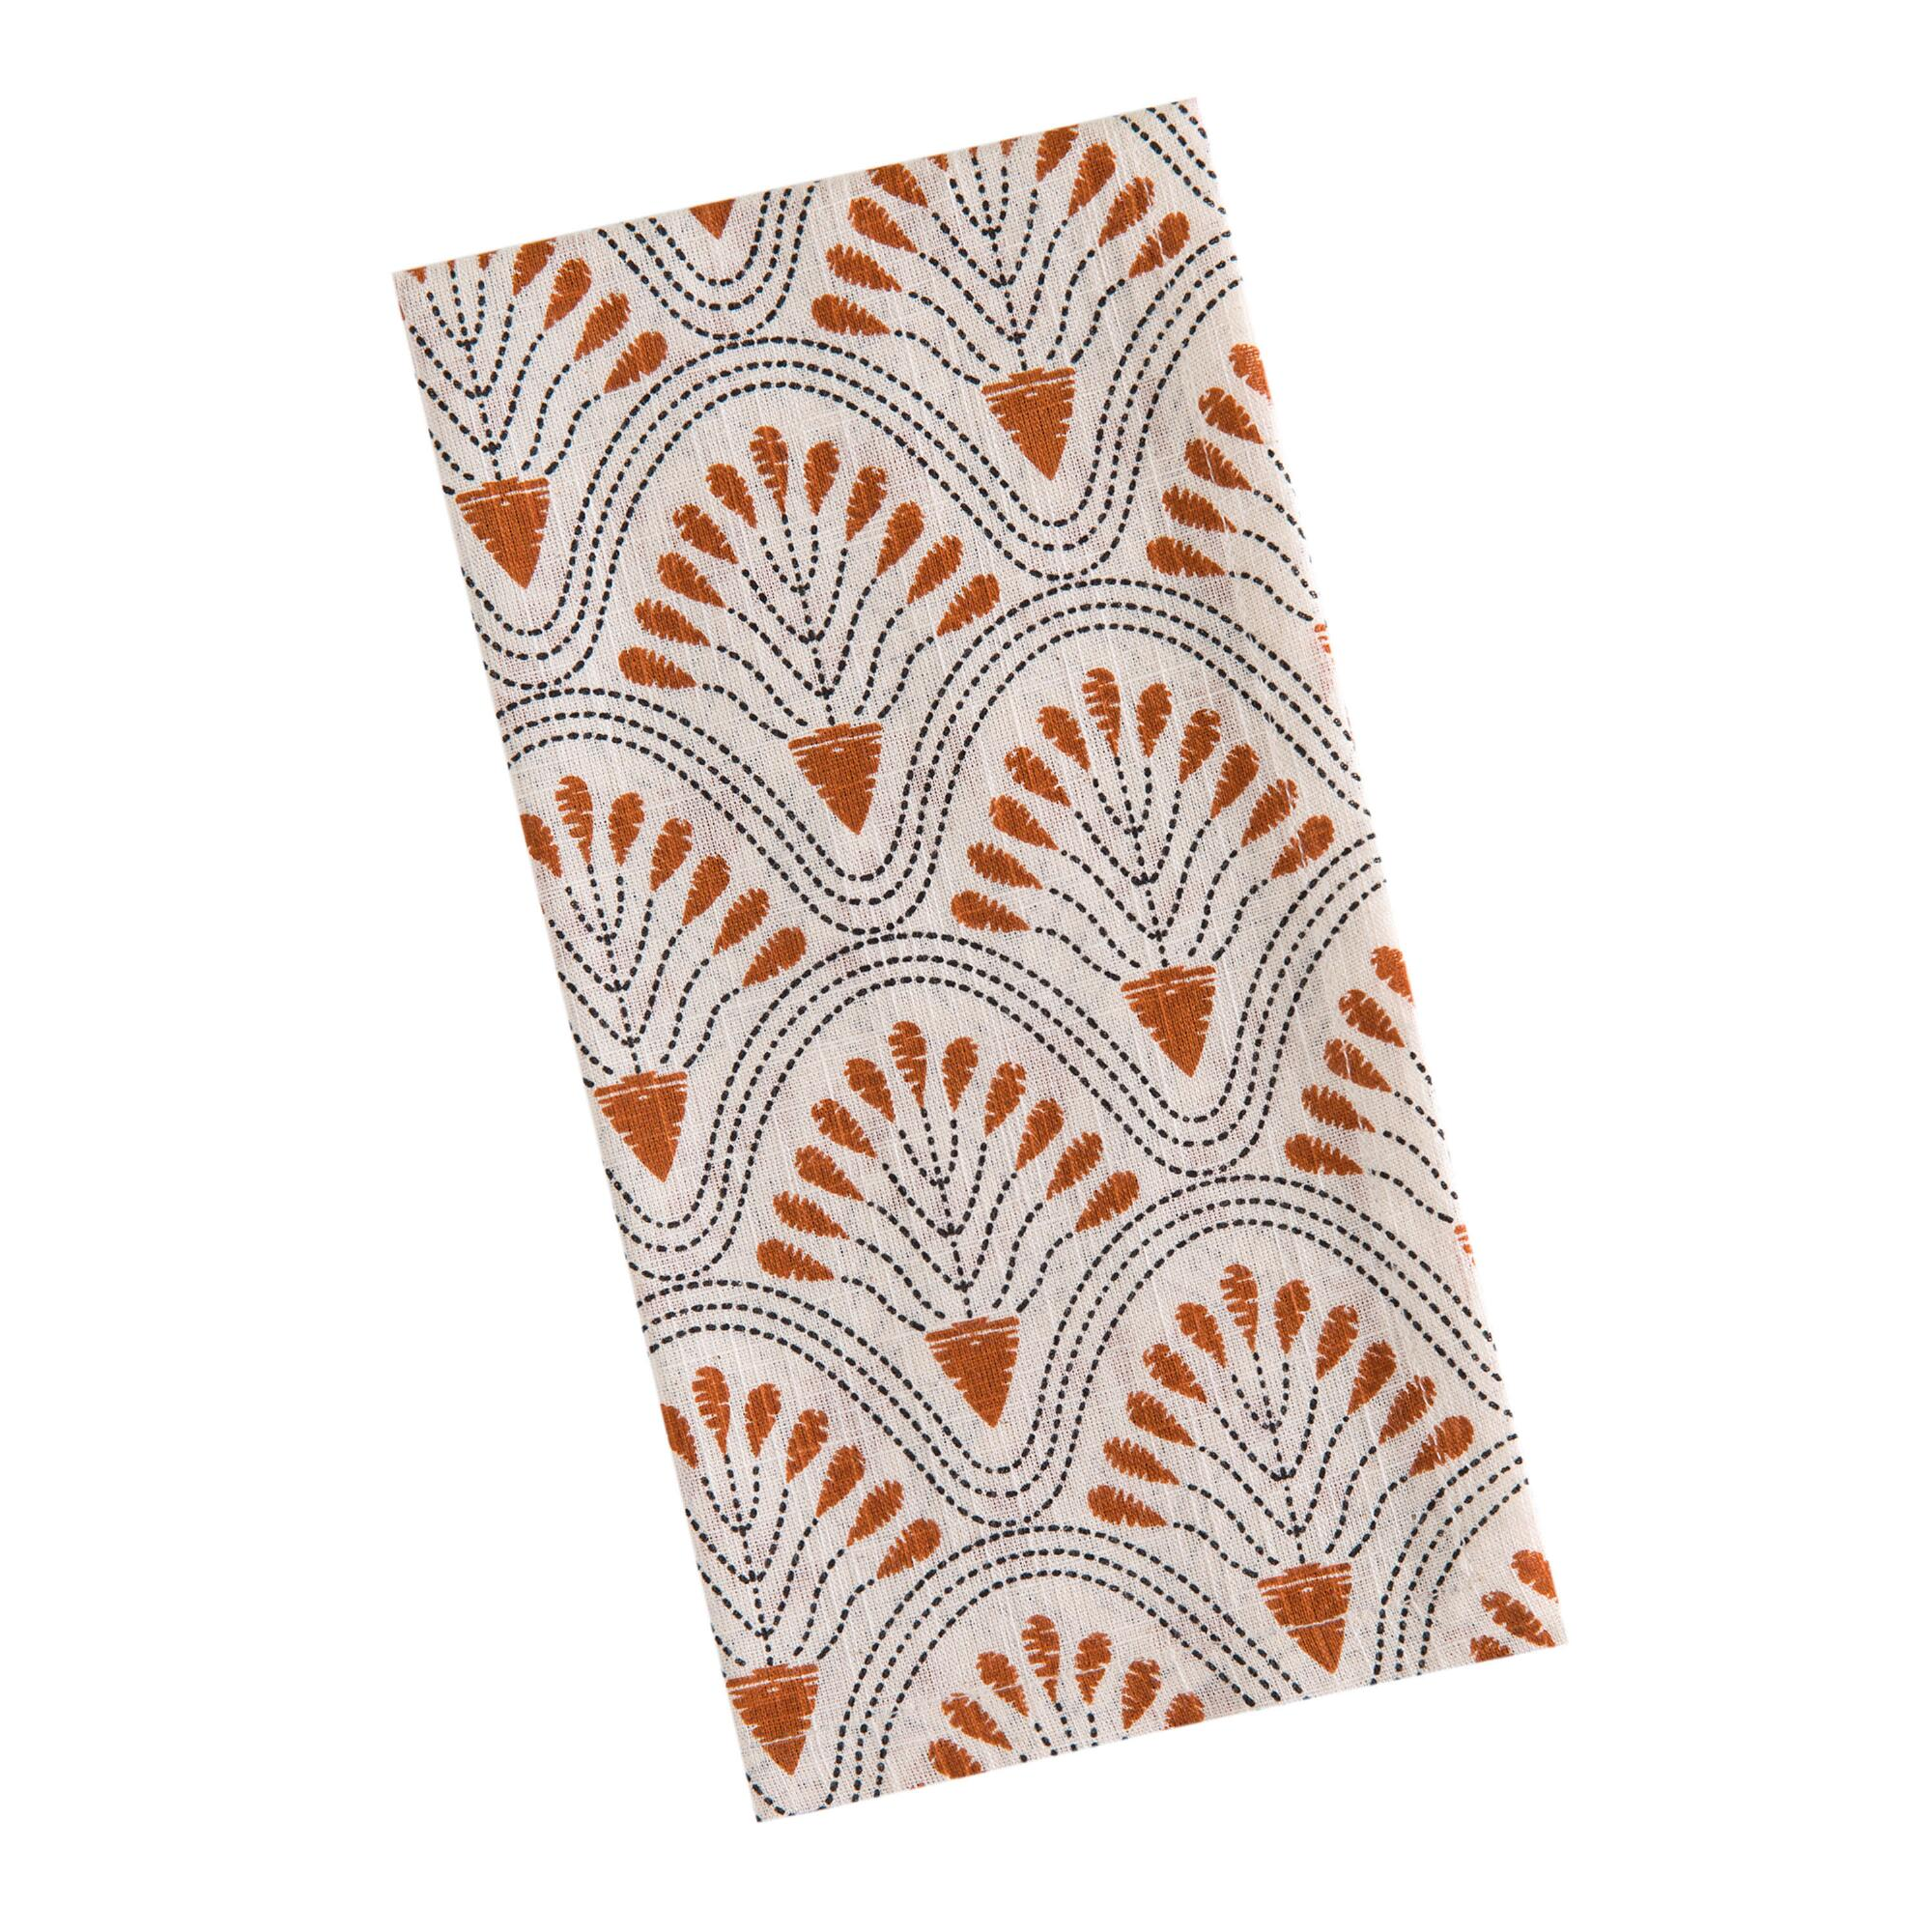 Shop Ivory Deco Floral Fan Napkins Set of 4 from World Market on Openhaus